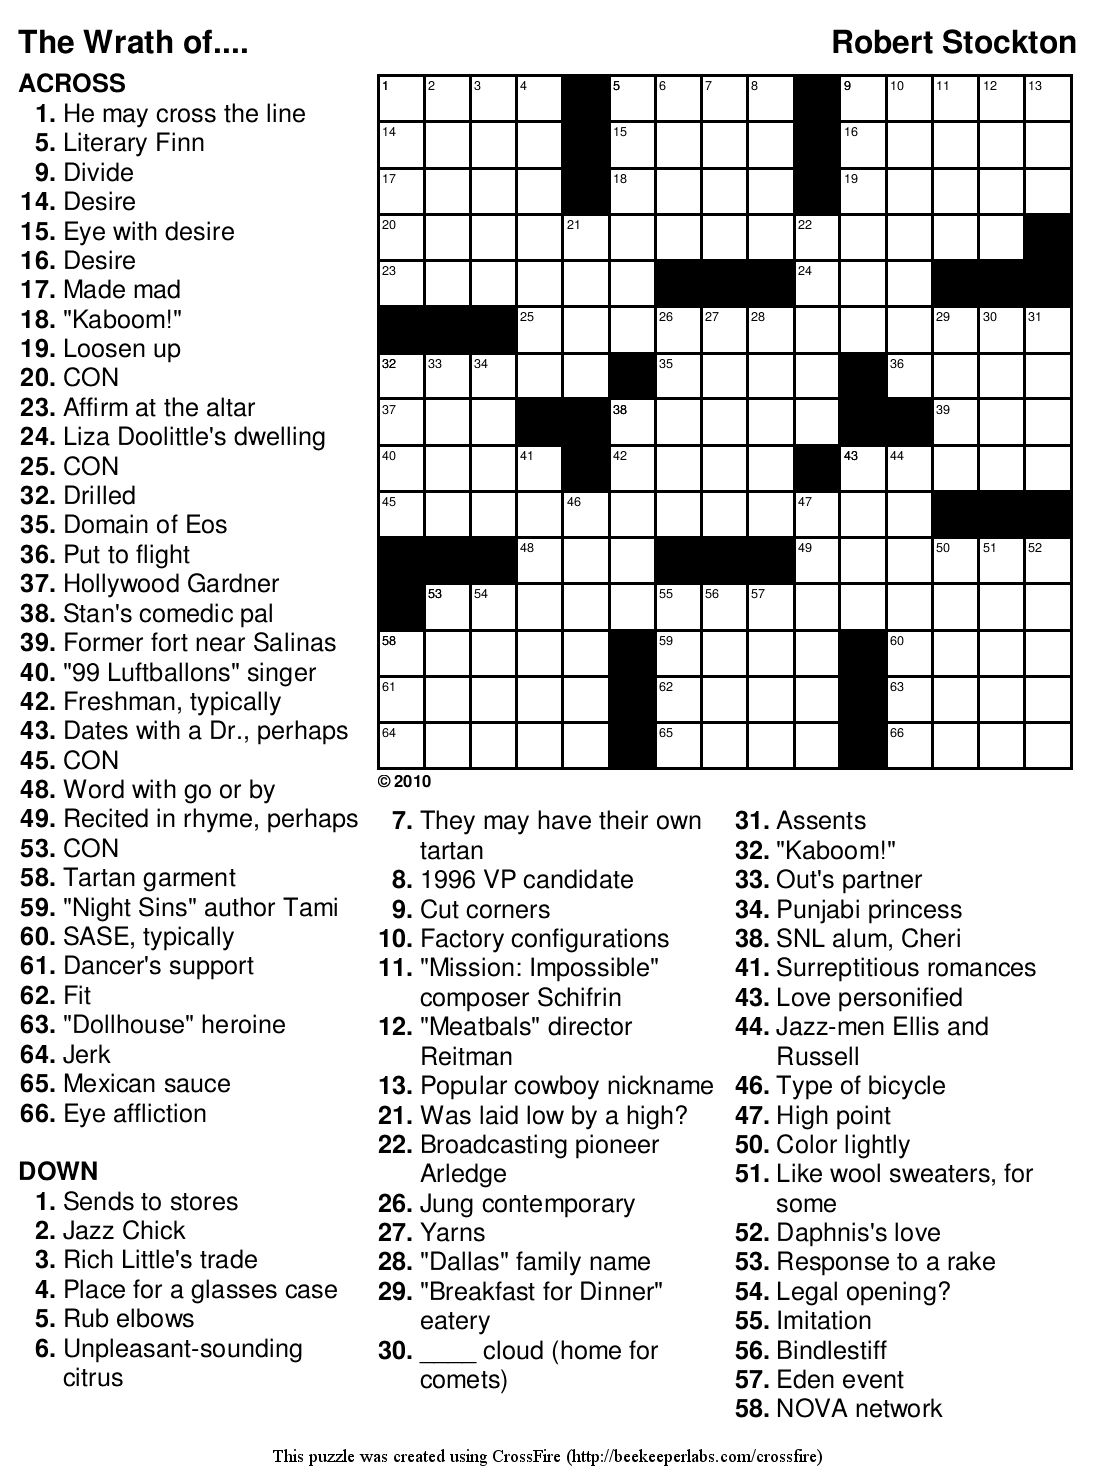 Marvelous Crossword Puzzles Easy Printable Free Org | Chas's Board - Printable Crossword Puzzles Easy With Answers